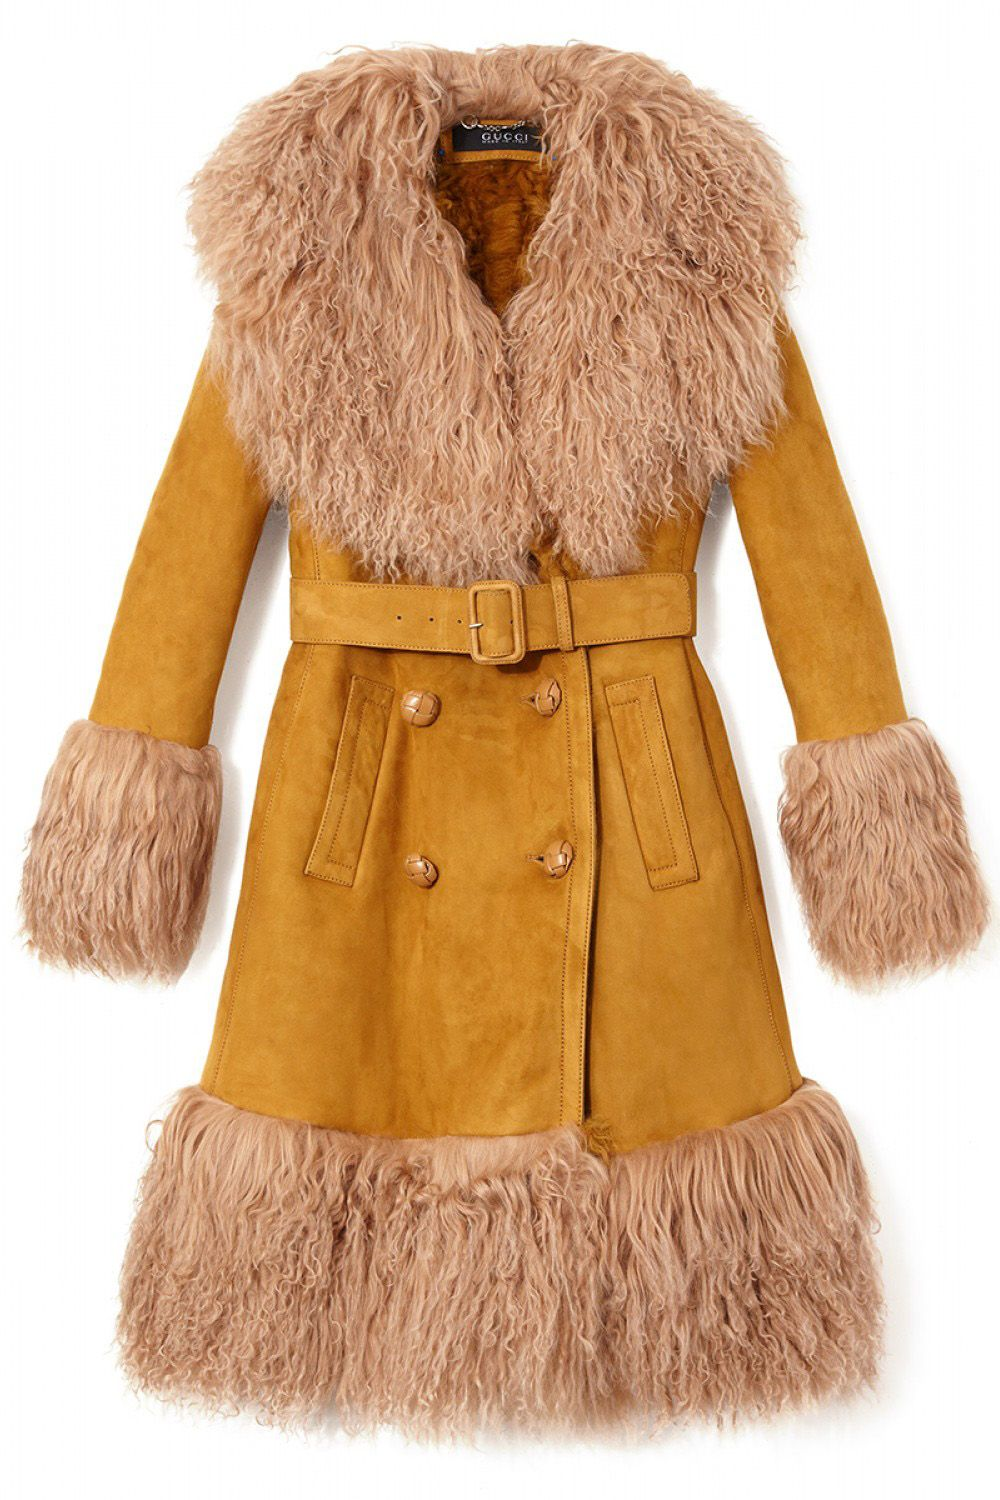 "<em>Gucci coat, $9,500, <a target=""_blank"" href=""http://shop.harpersbazaar.com/designers/gucci/belted-shearling-coat/"">ShopBAZAAR.com.</a></em>"